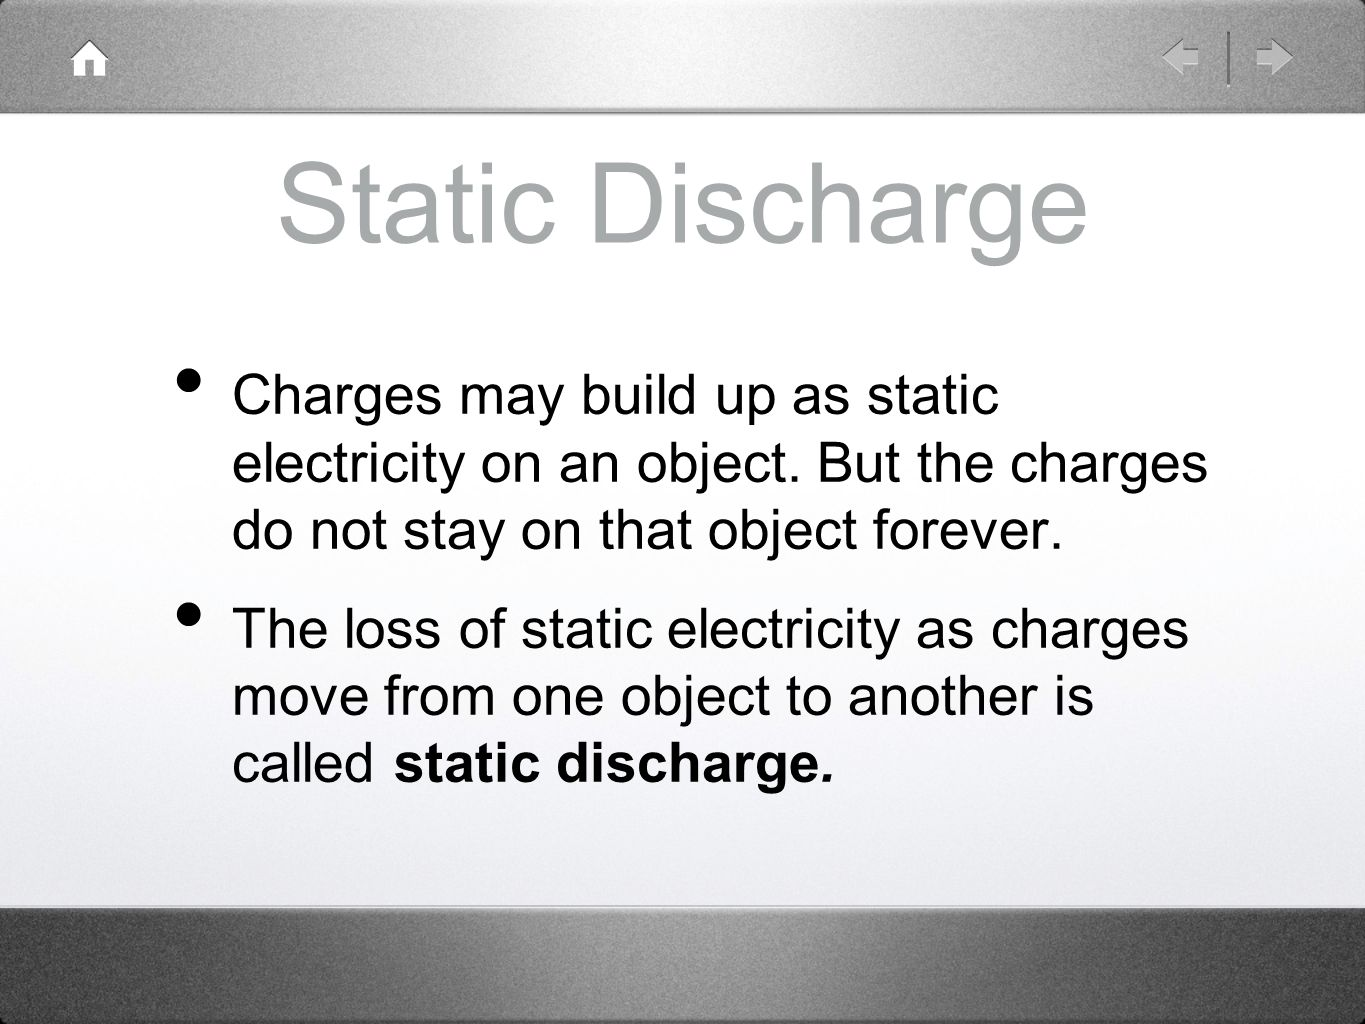 Static Discharge Charges may build up as static electricity on an object. But the charges do not stay on that object forever.